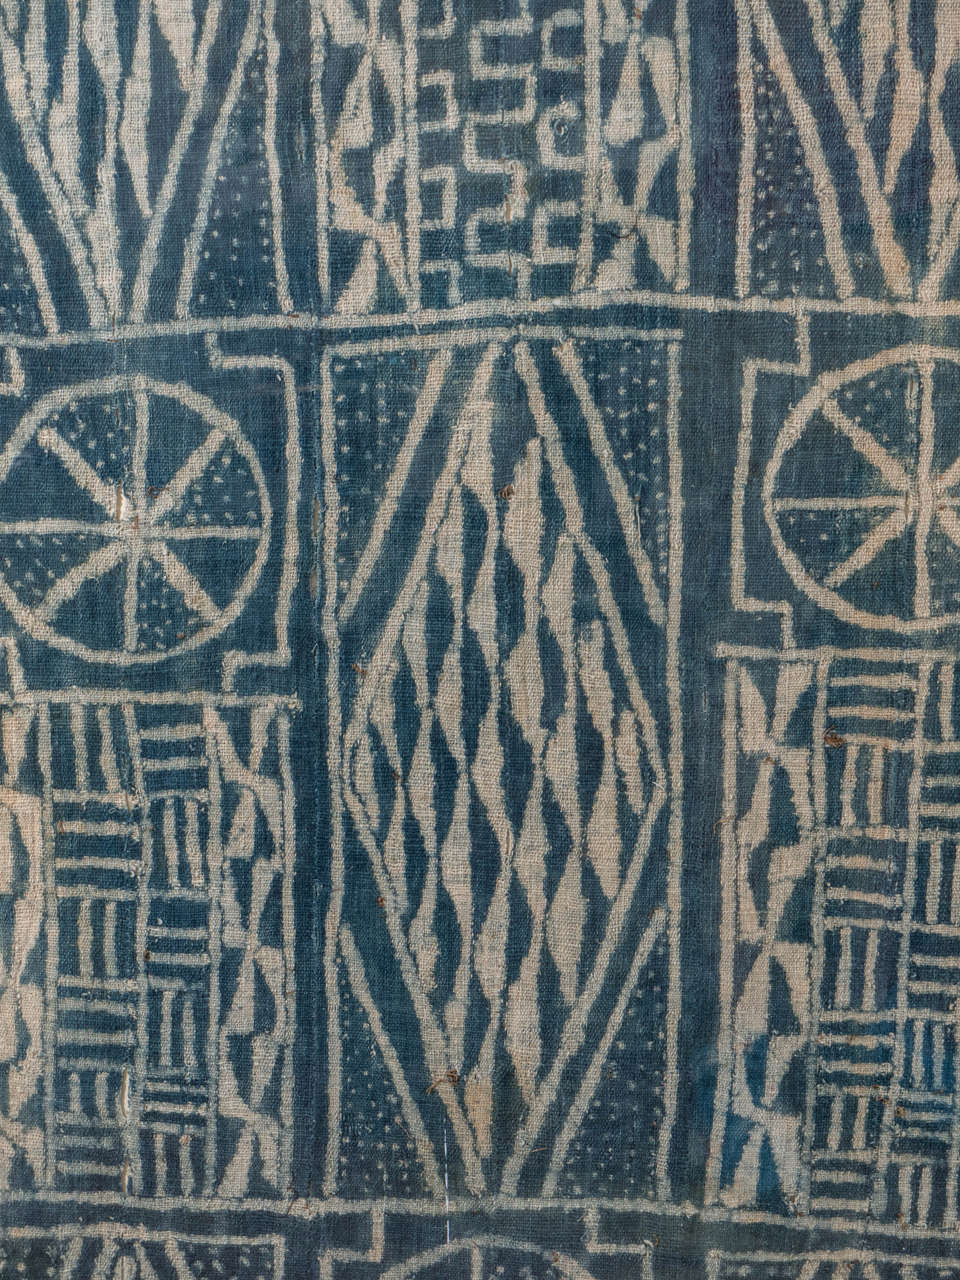 African Cameroon Ceremonial Chiefs Cloth 3